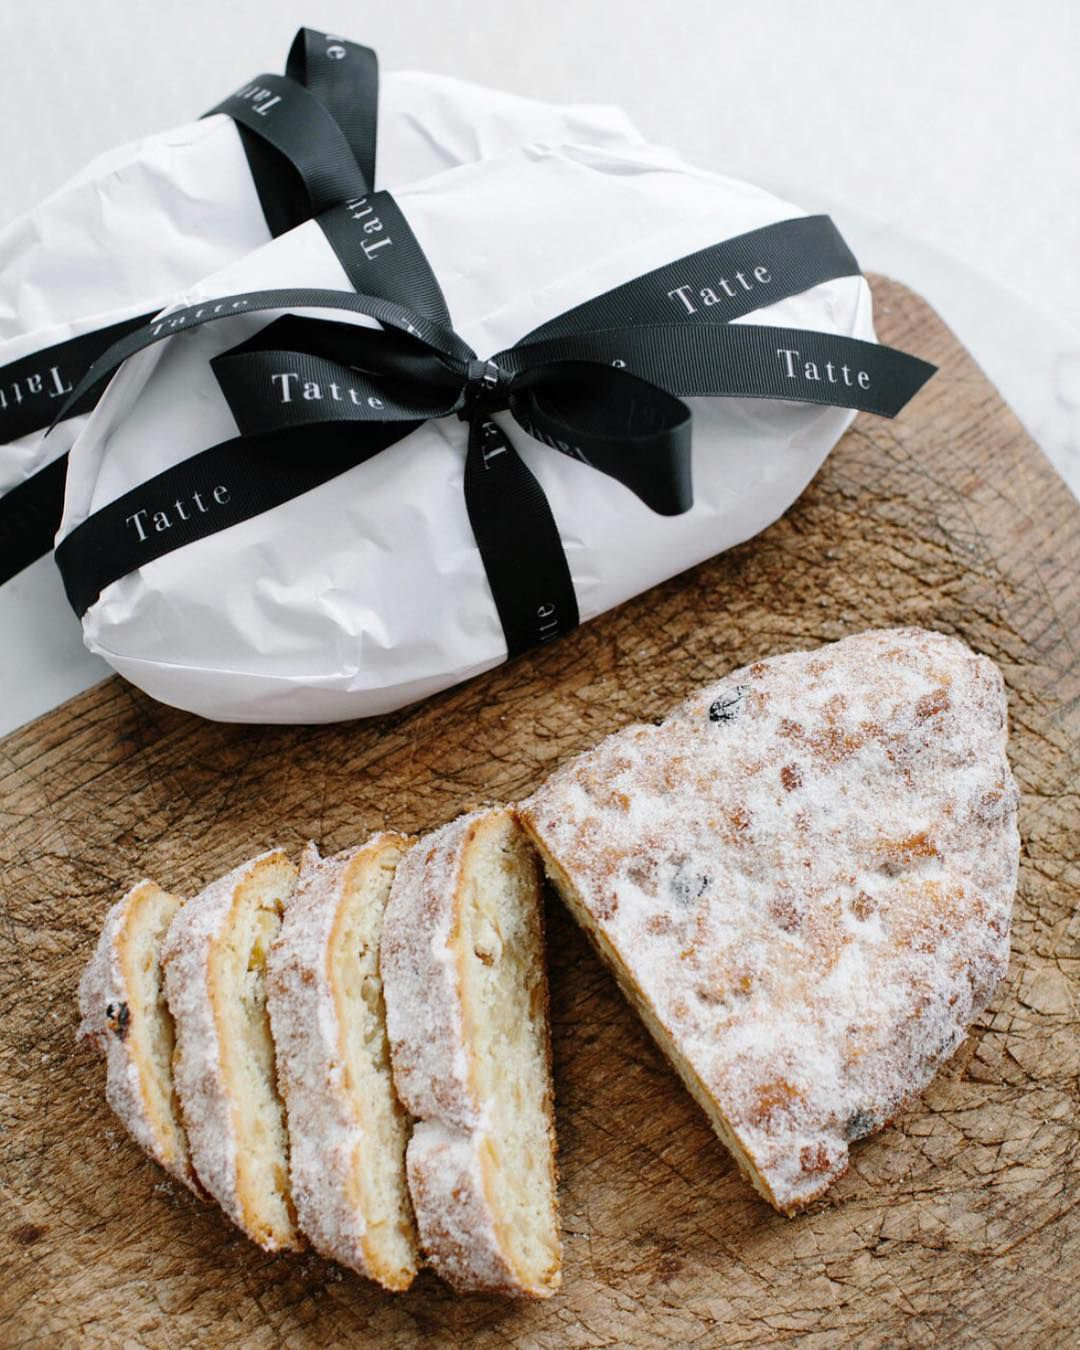 Tatte's stollen with fruit, nuts, and spices, dipped in butter and coated with powdered sugar